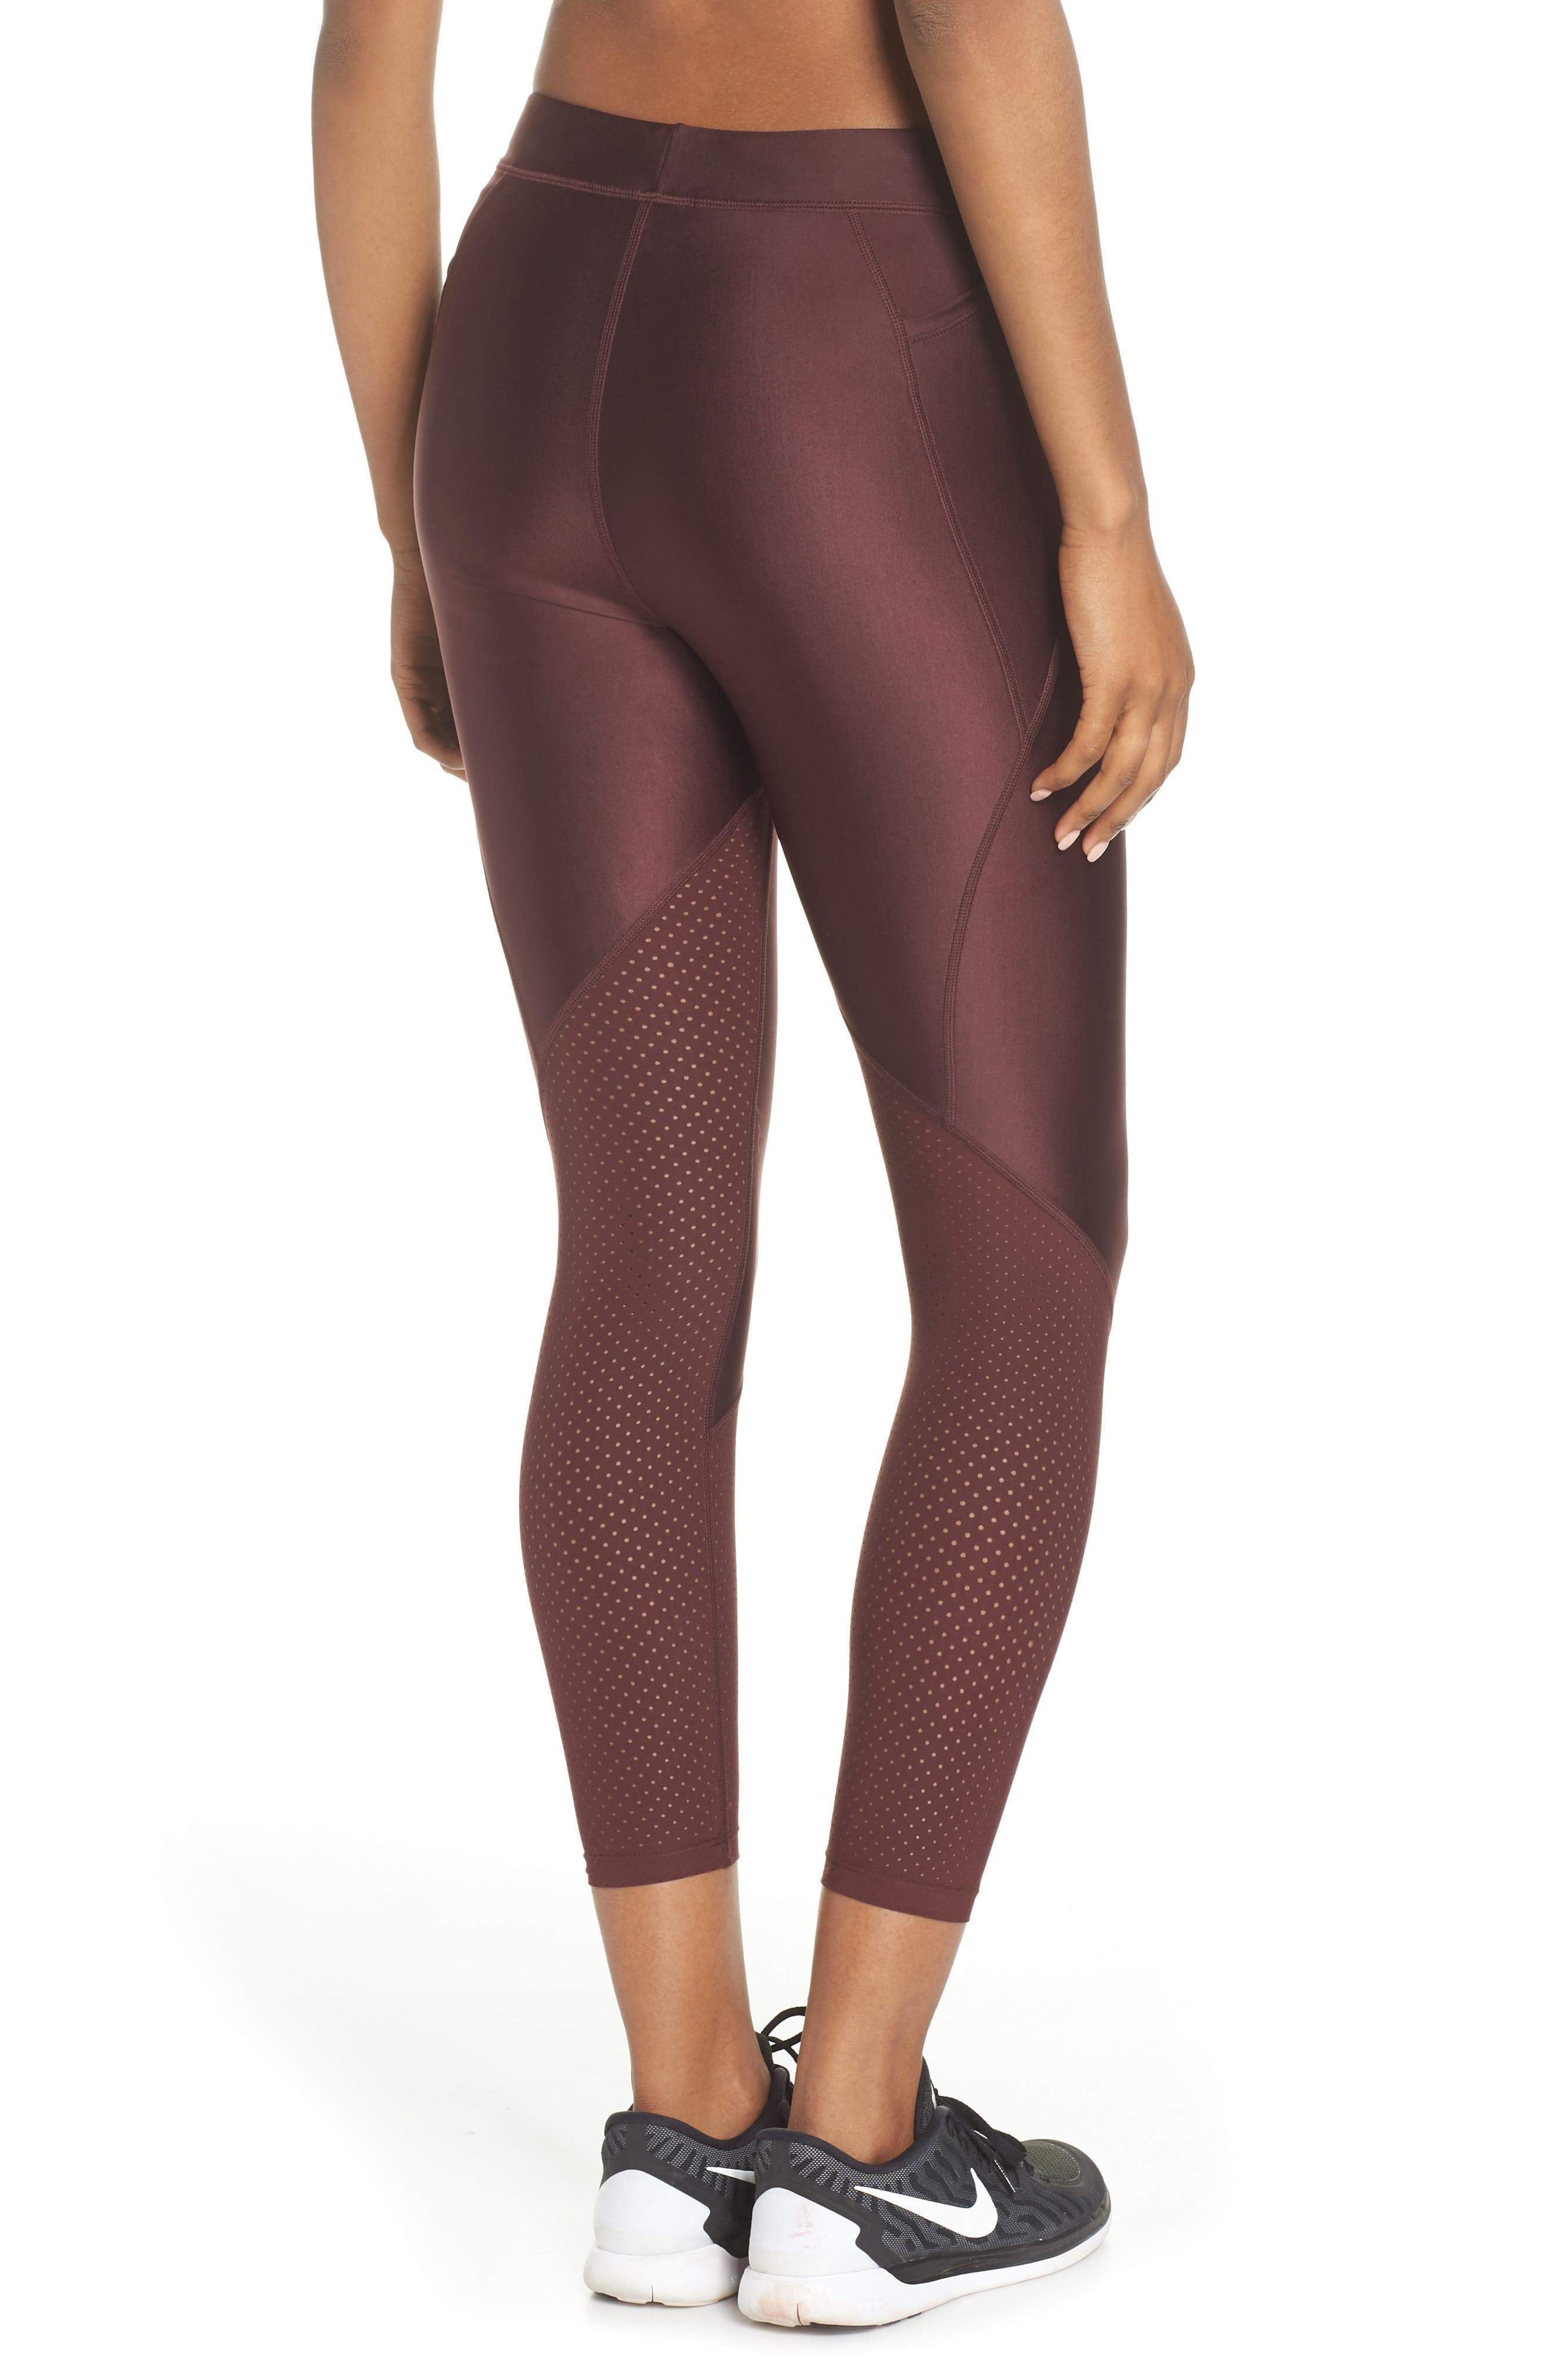 Speed Cool Running Tights,                             Alternate thumbnail 2, color,                             930